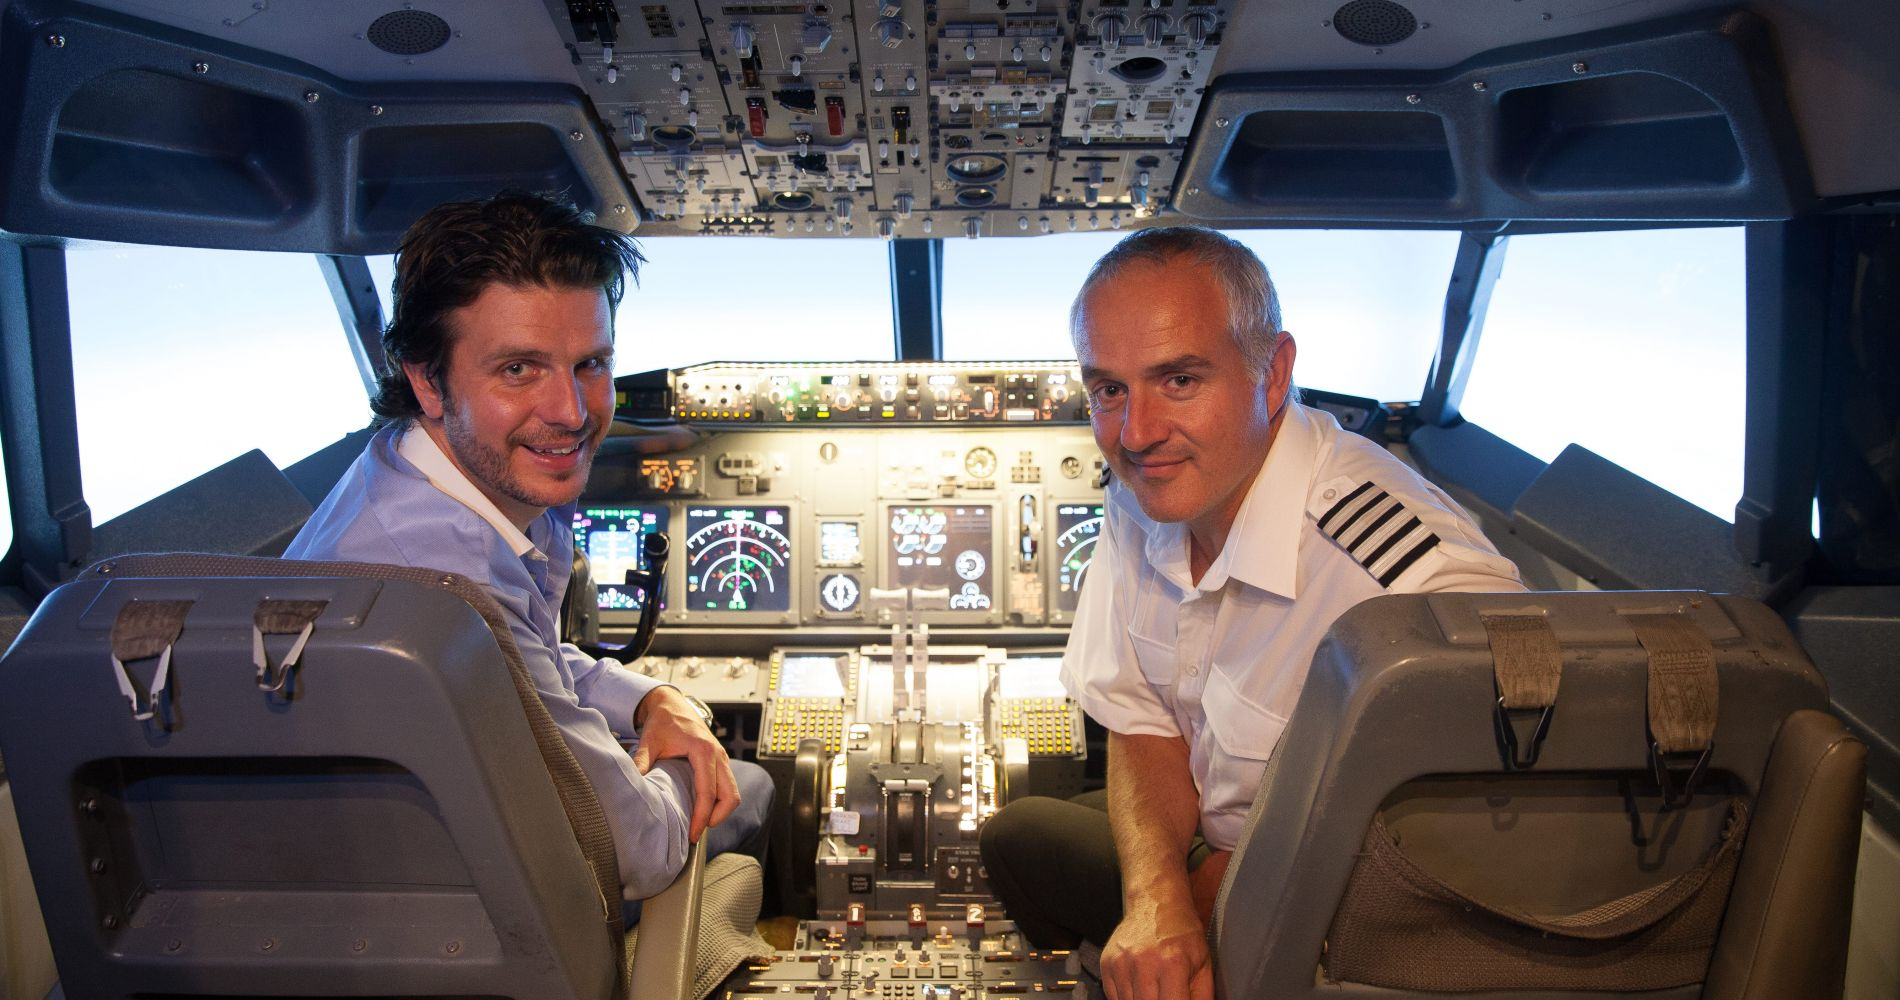 Unique 30 mins. Experience with 737 Flight Simulator in the UK